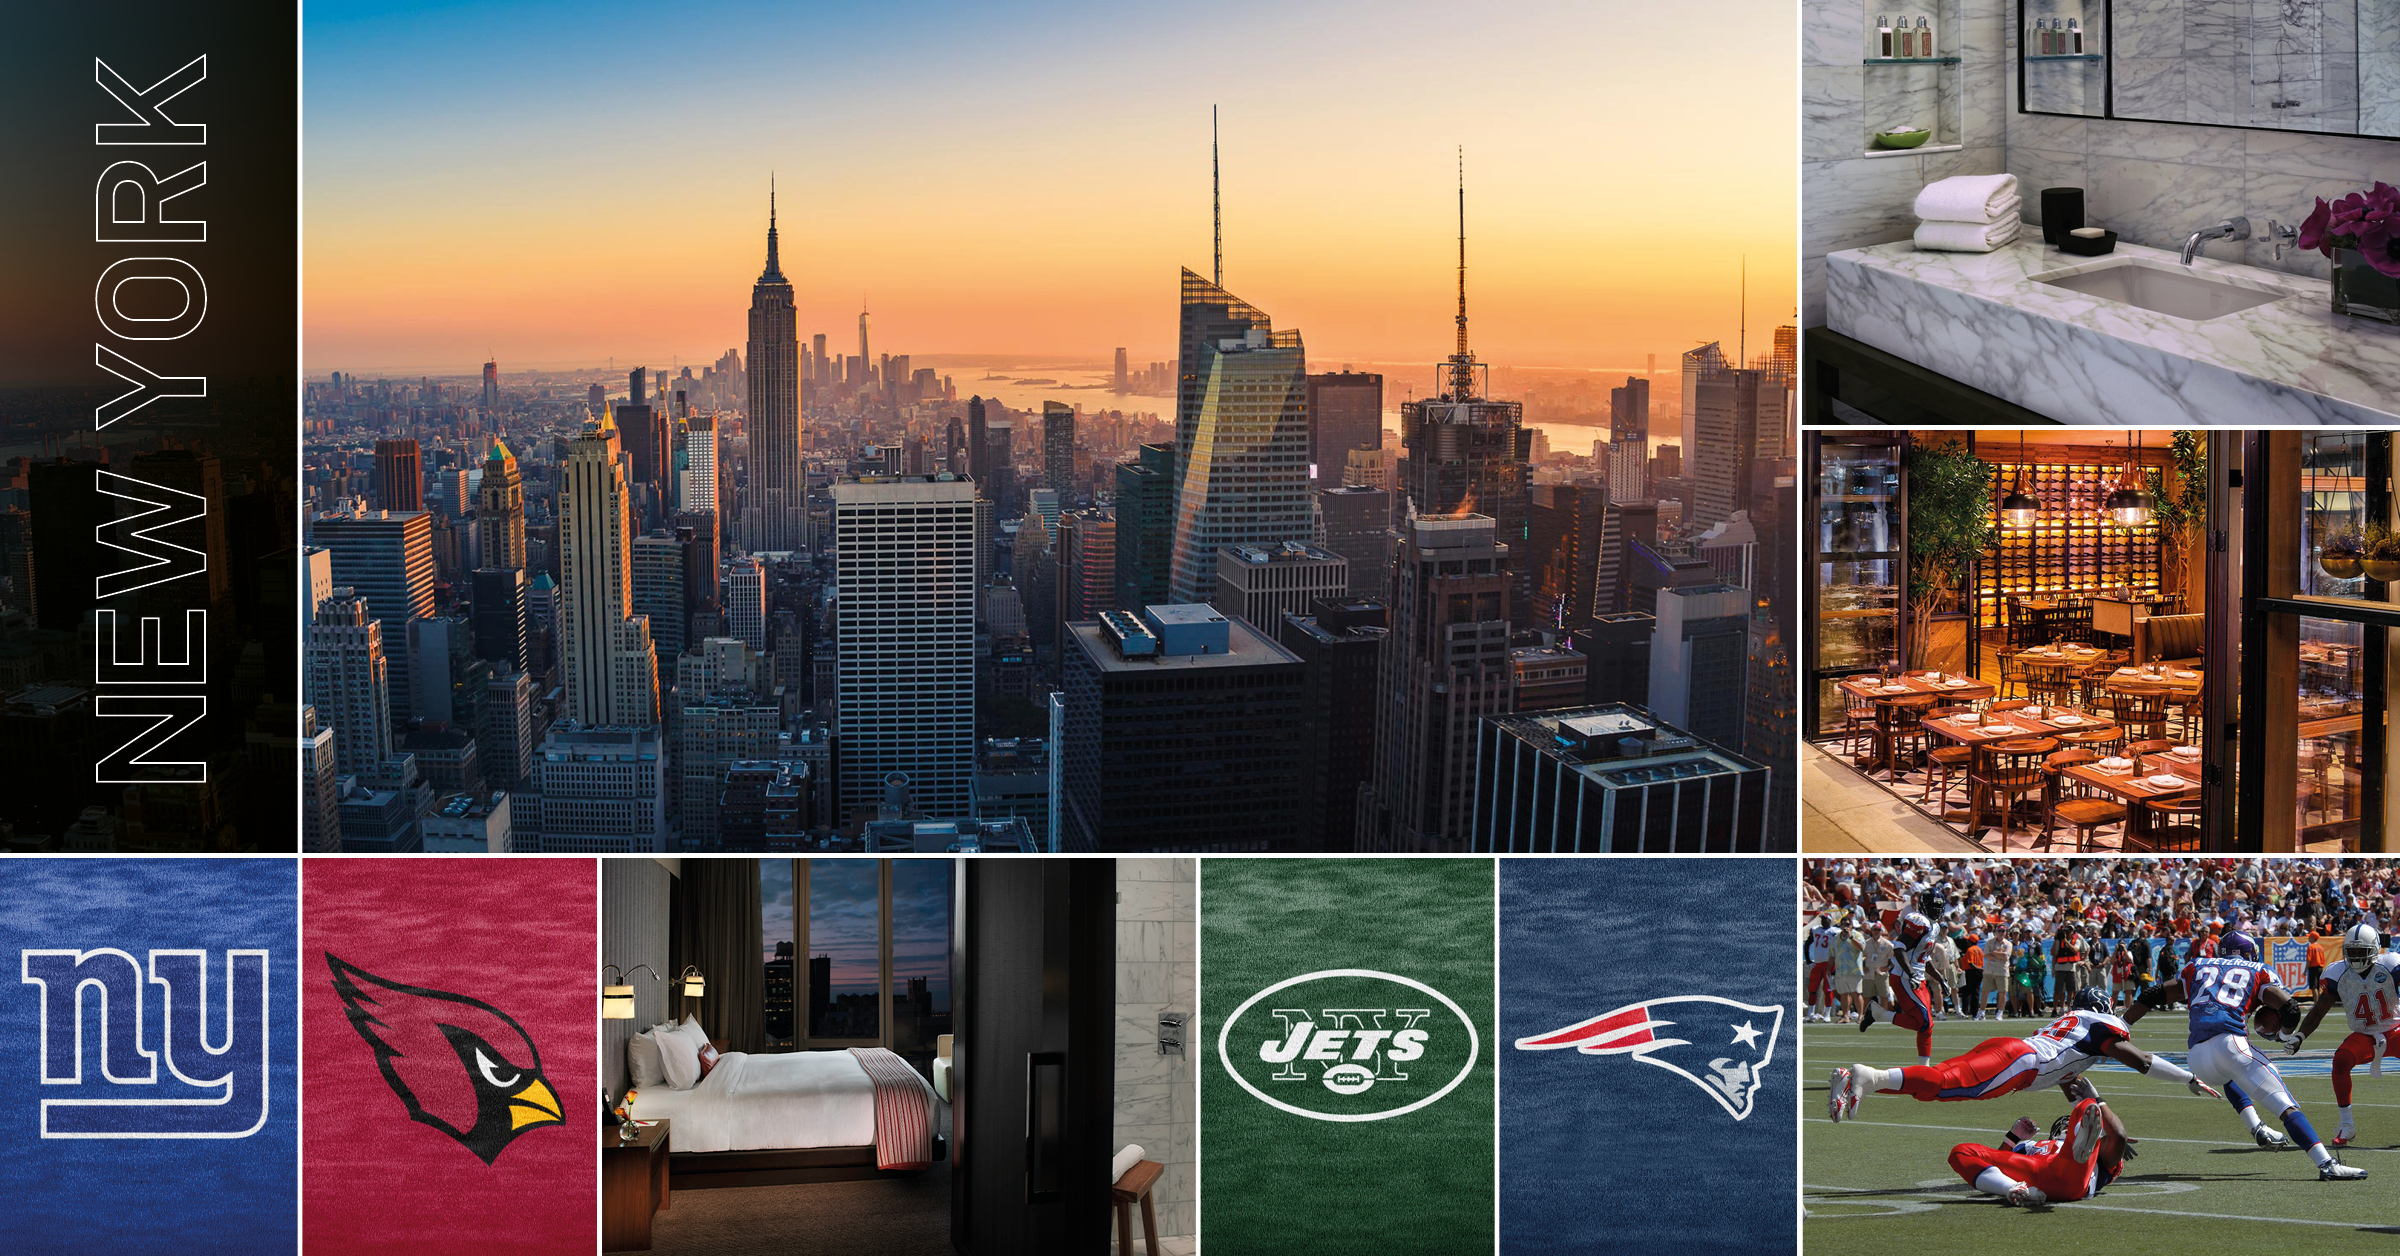 NFL-resa New York - 18 - 22 oktober går resan till staden som aldrig sover, New York. Bo fyra nätter på lyxhotellet Kimpton Hotel Eventi. Två NFL-matcher på två dagar. Giants - Arizona och New York Jets - New England Patriots.